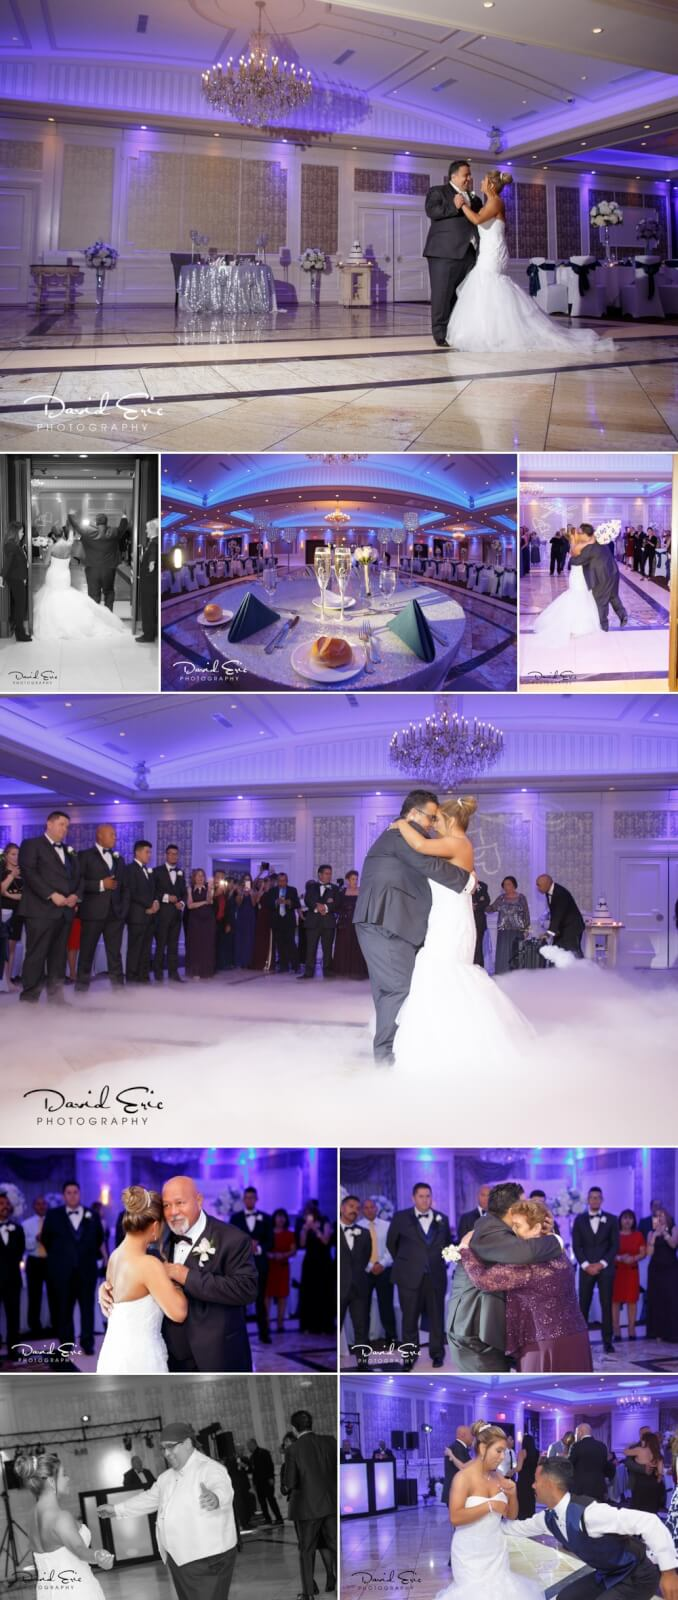 A beautiful wedding documented by David Eric Photography. Reception held at The Terrace in Paramus, NJ.